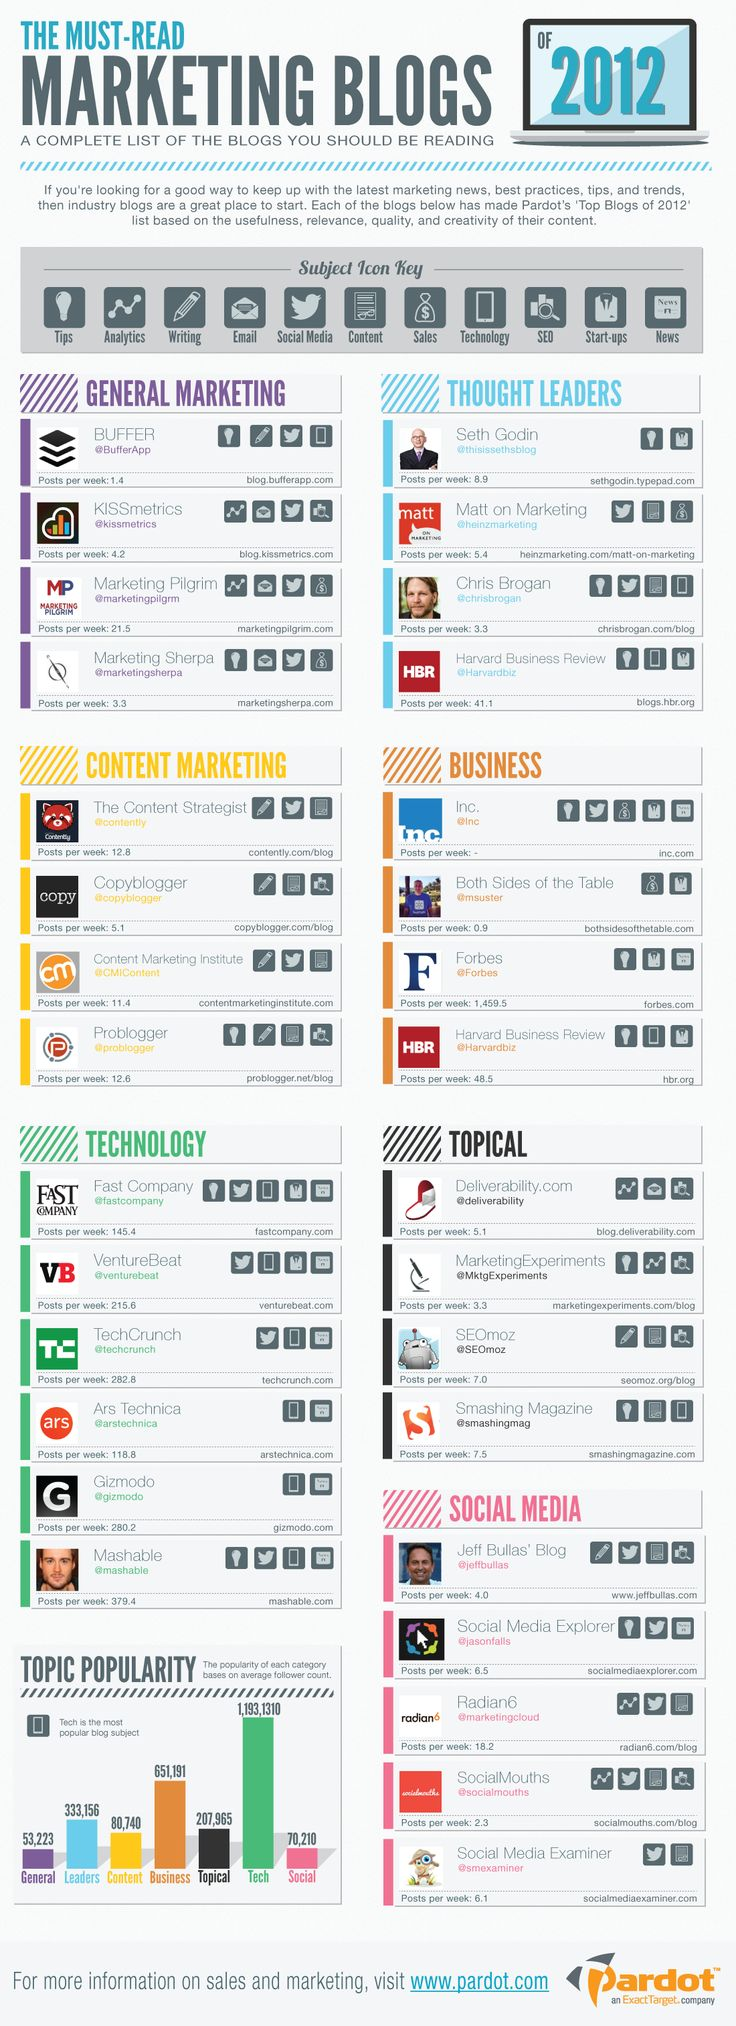 Must-Read Marketing Blogs of 2012. Infographic.